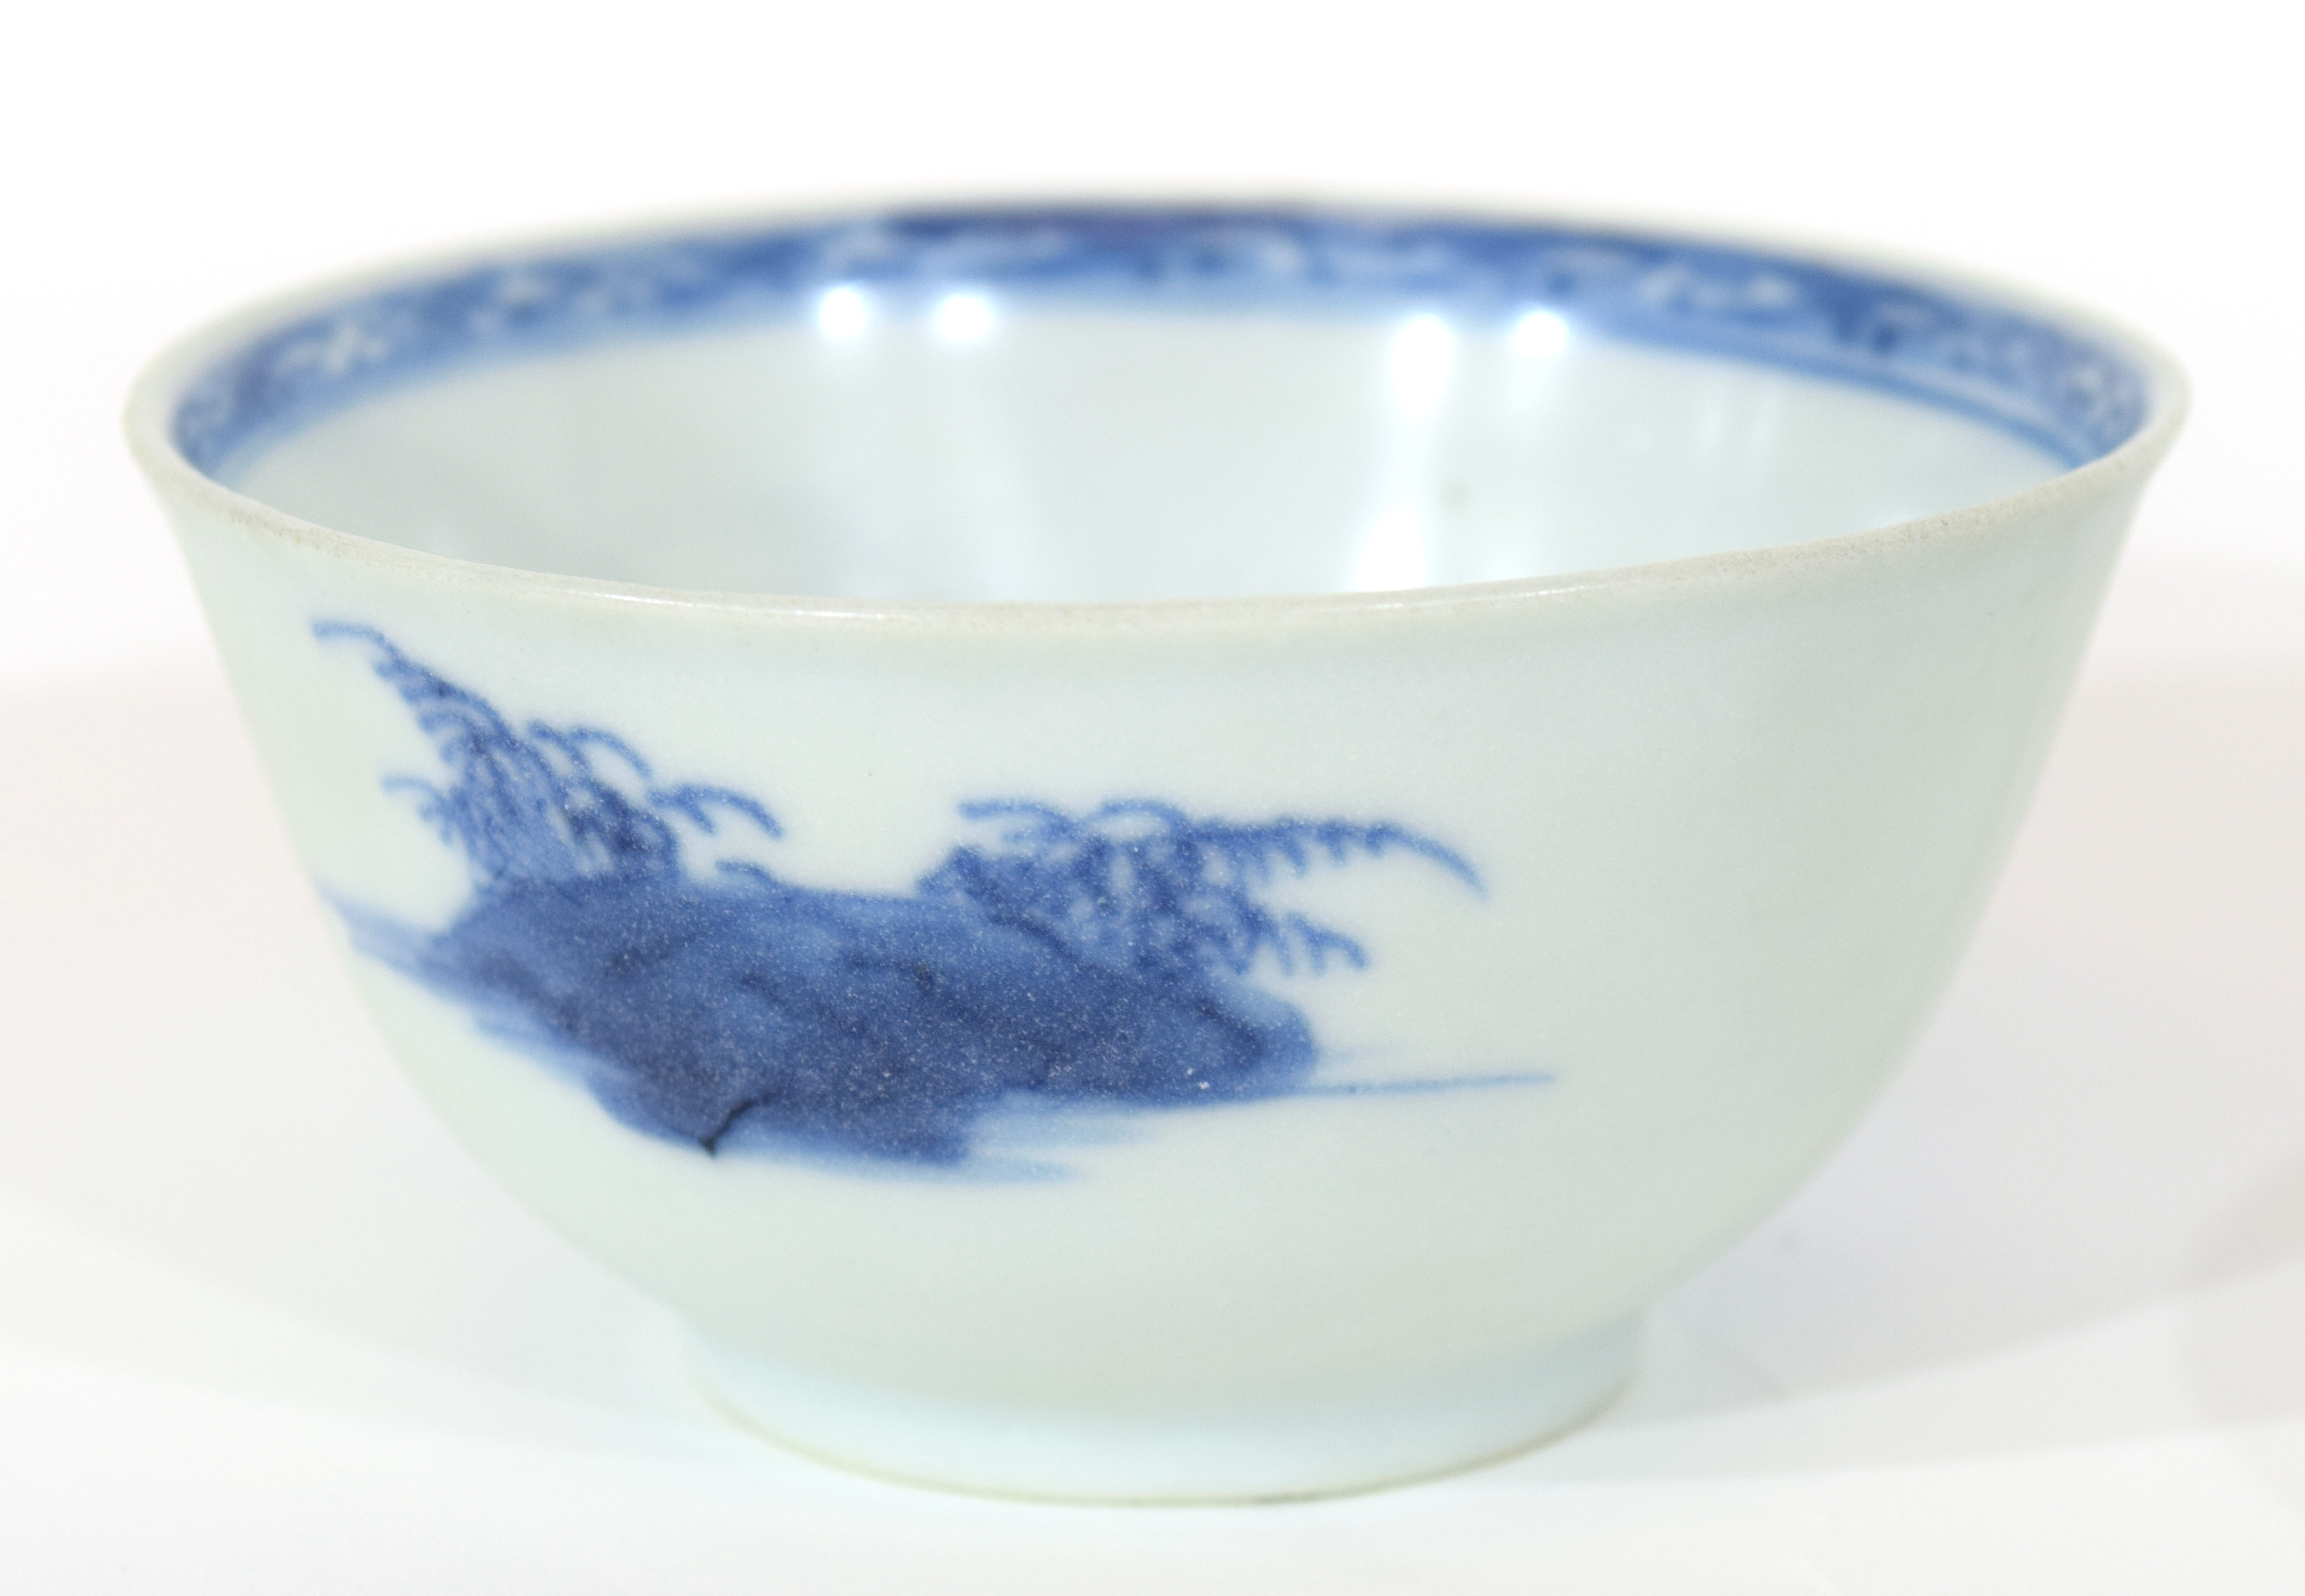 18th century Chinese porcelain Nanking Cargo tea bowl and saucer - Image 12 of 15